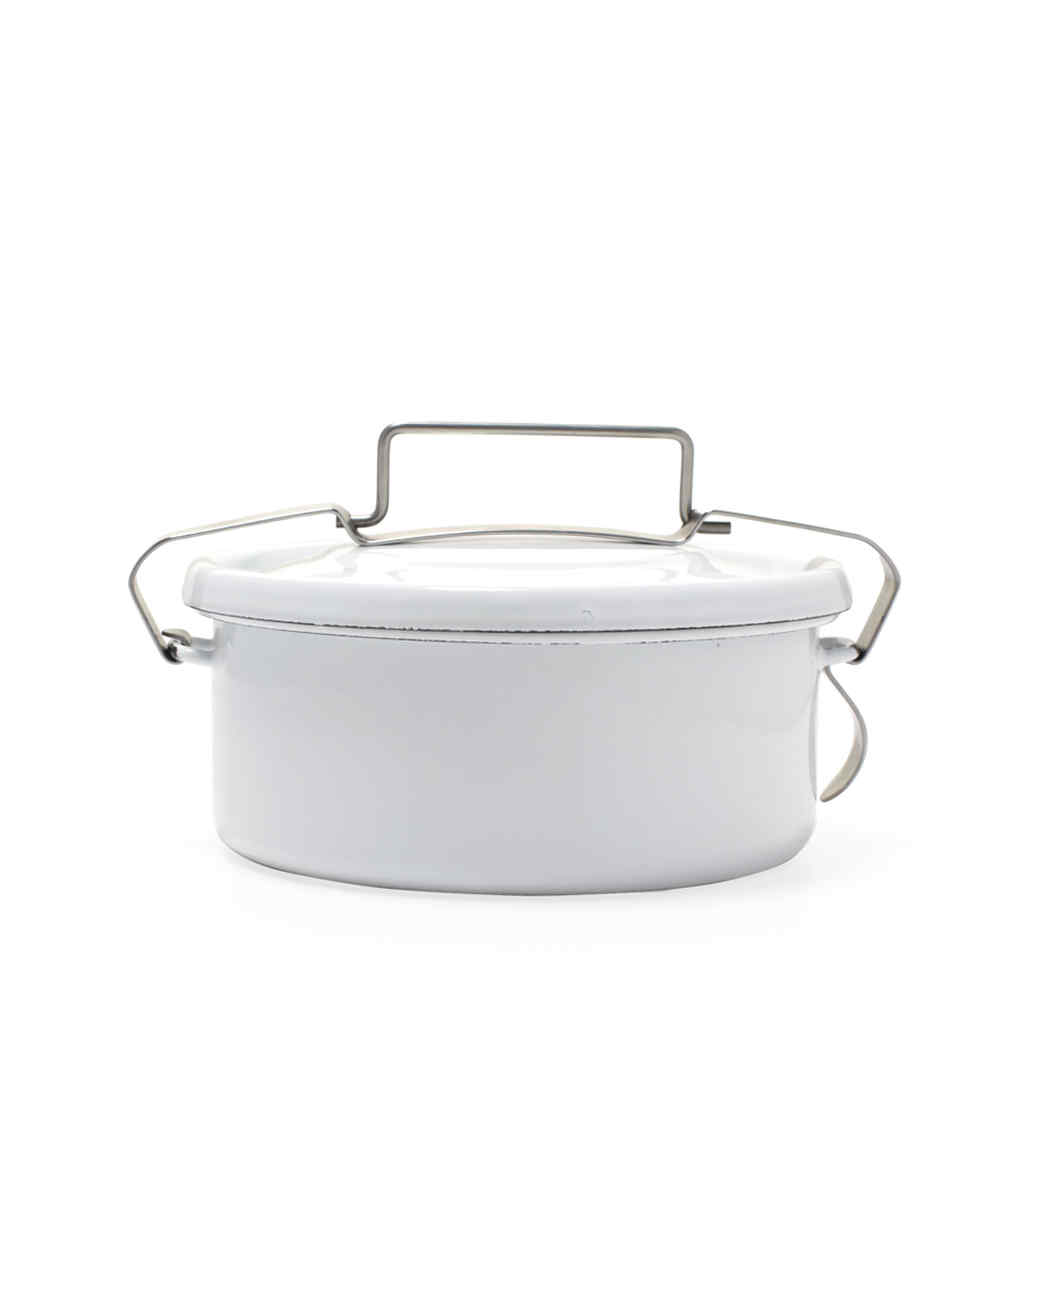 ceramic-lunch-pail-mld108683.jpg